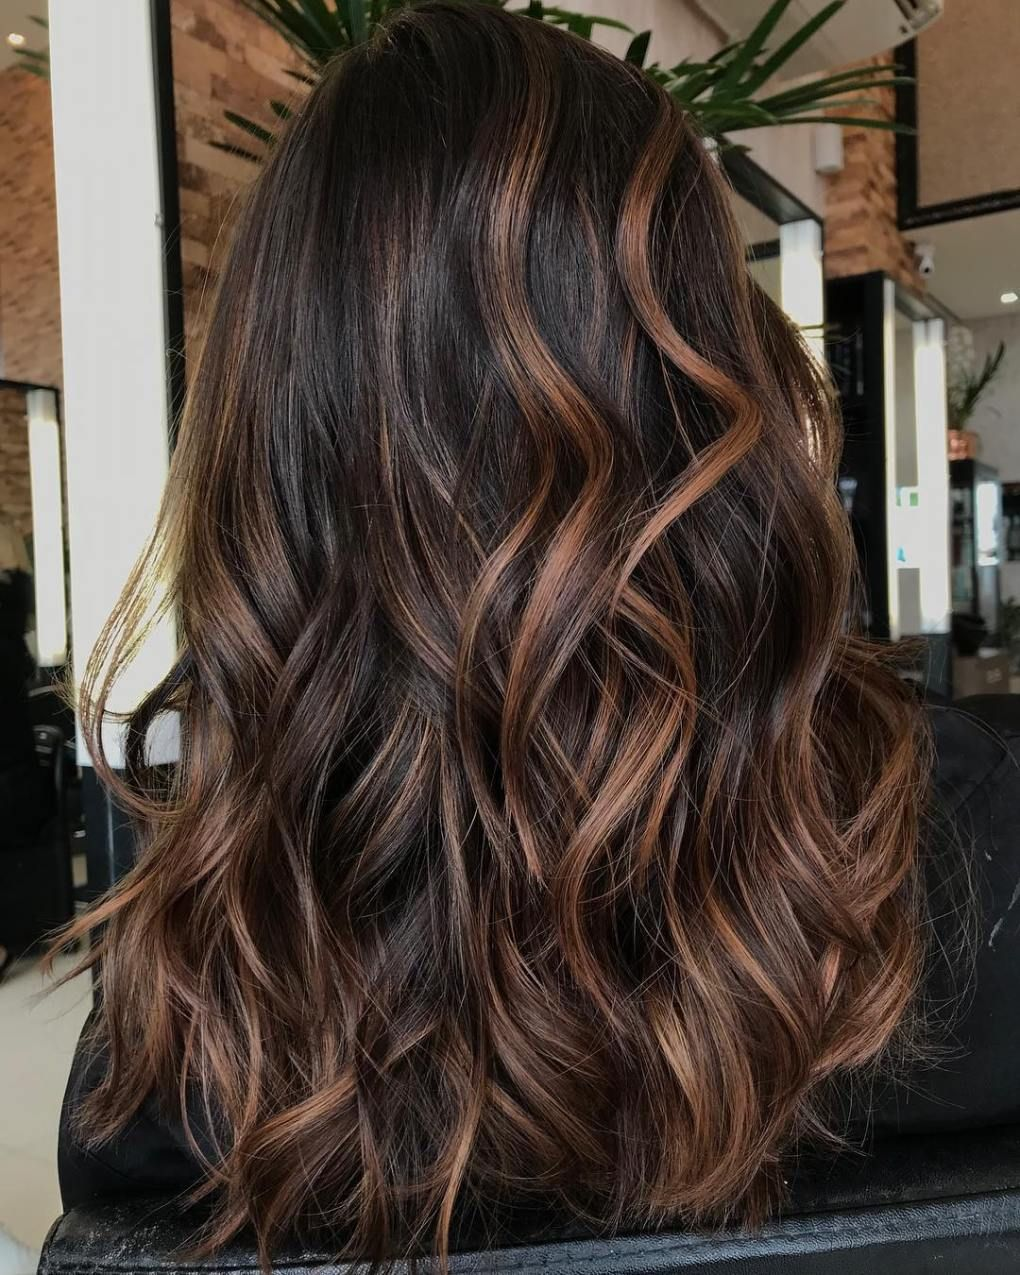 Wavy Brown Hair With Caramel Highlights Brown Hair With Highlights Hair Highlights Fall Hair Color For Brunettes